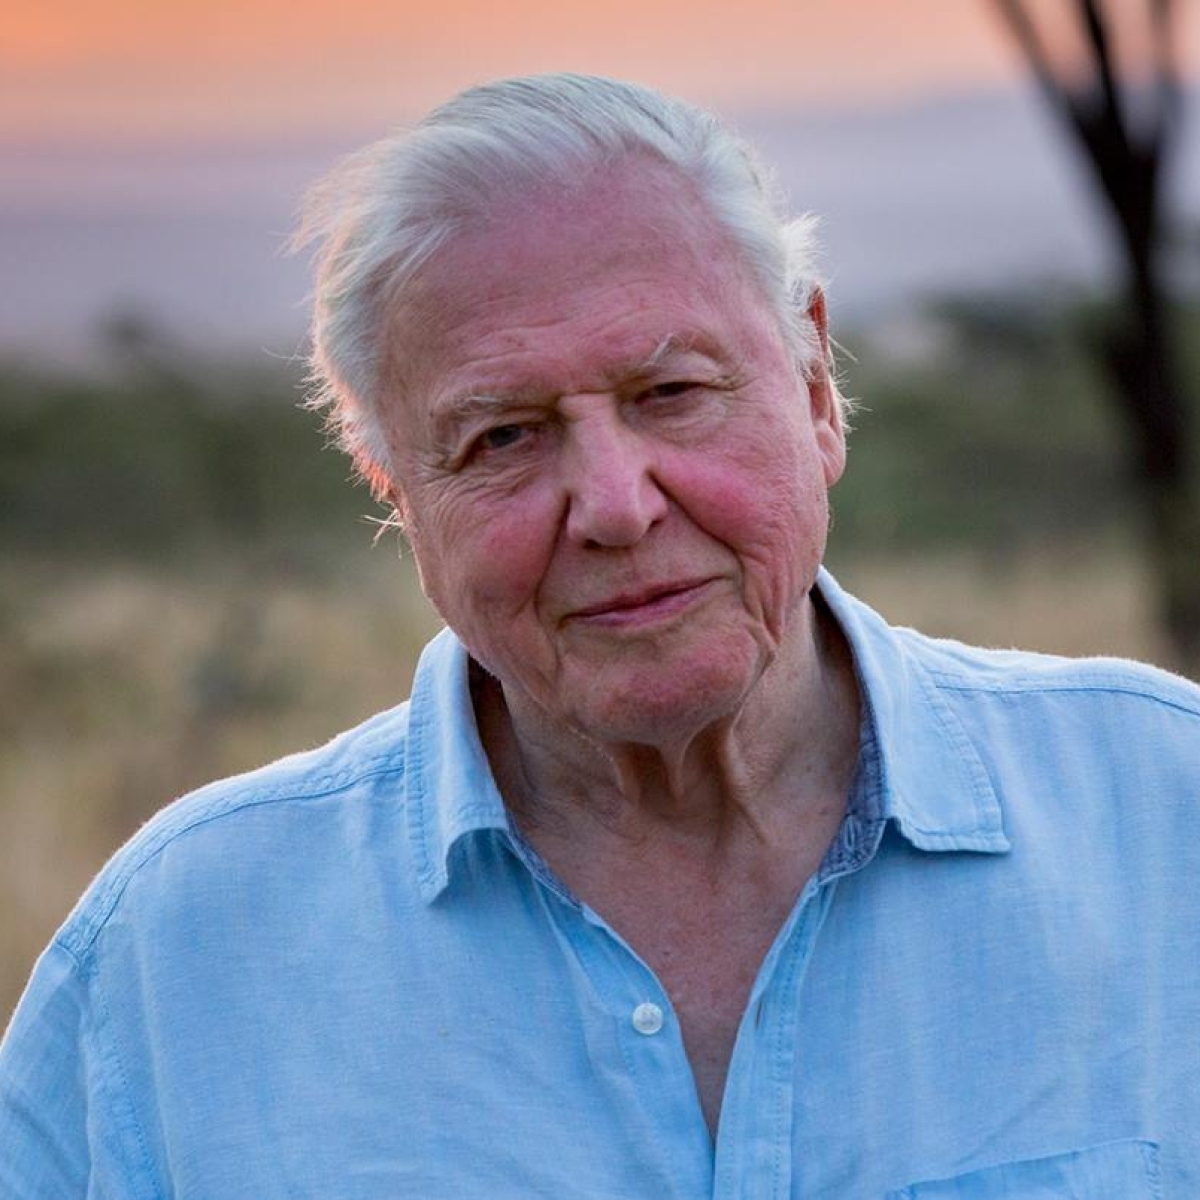 British broadcaster David Attenborough joins Instagram at 94; smashes world record